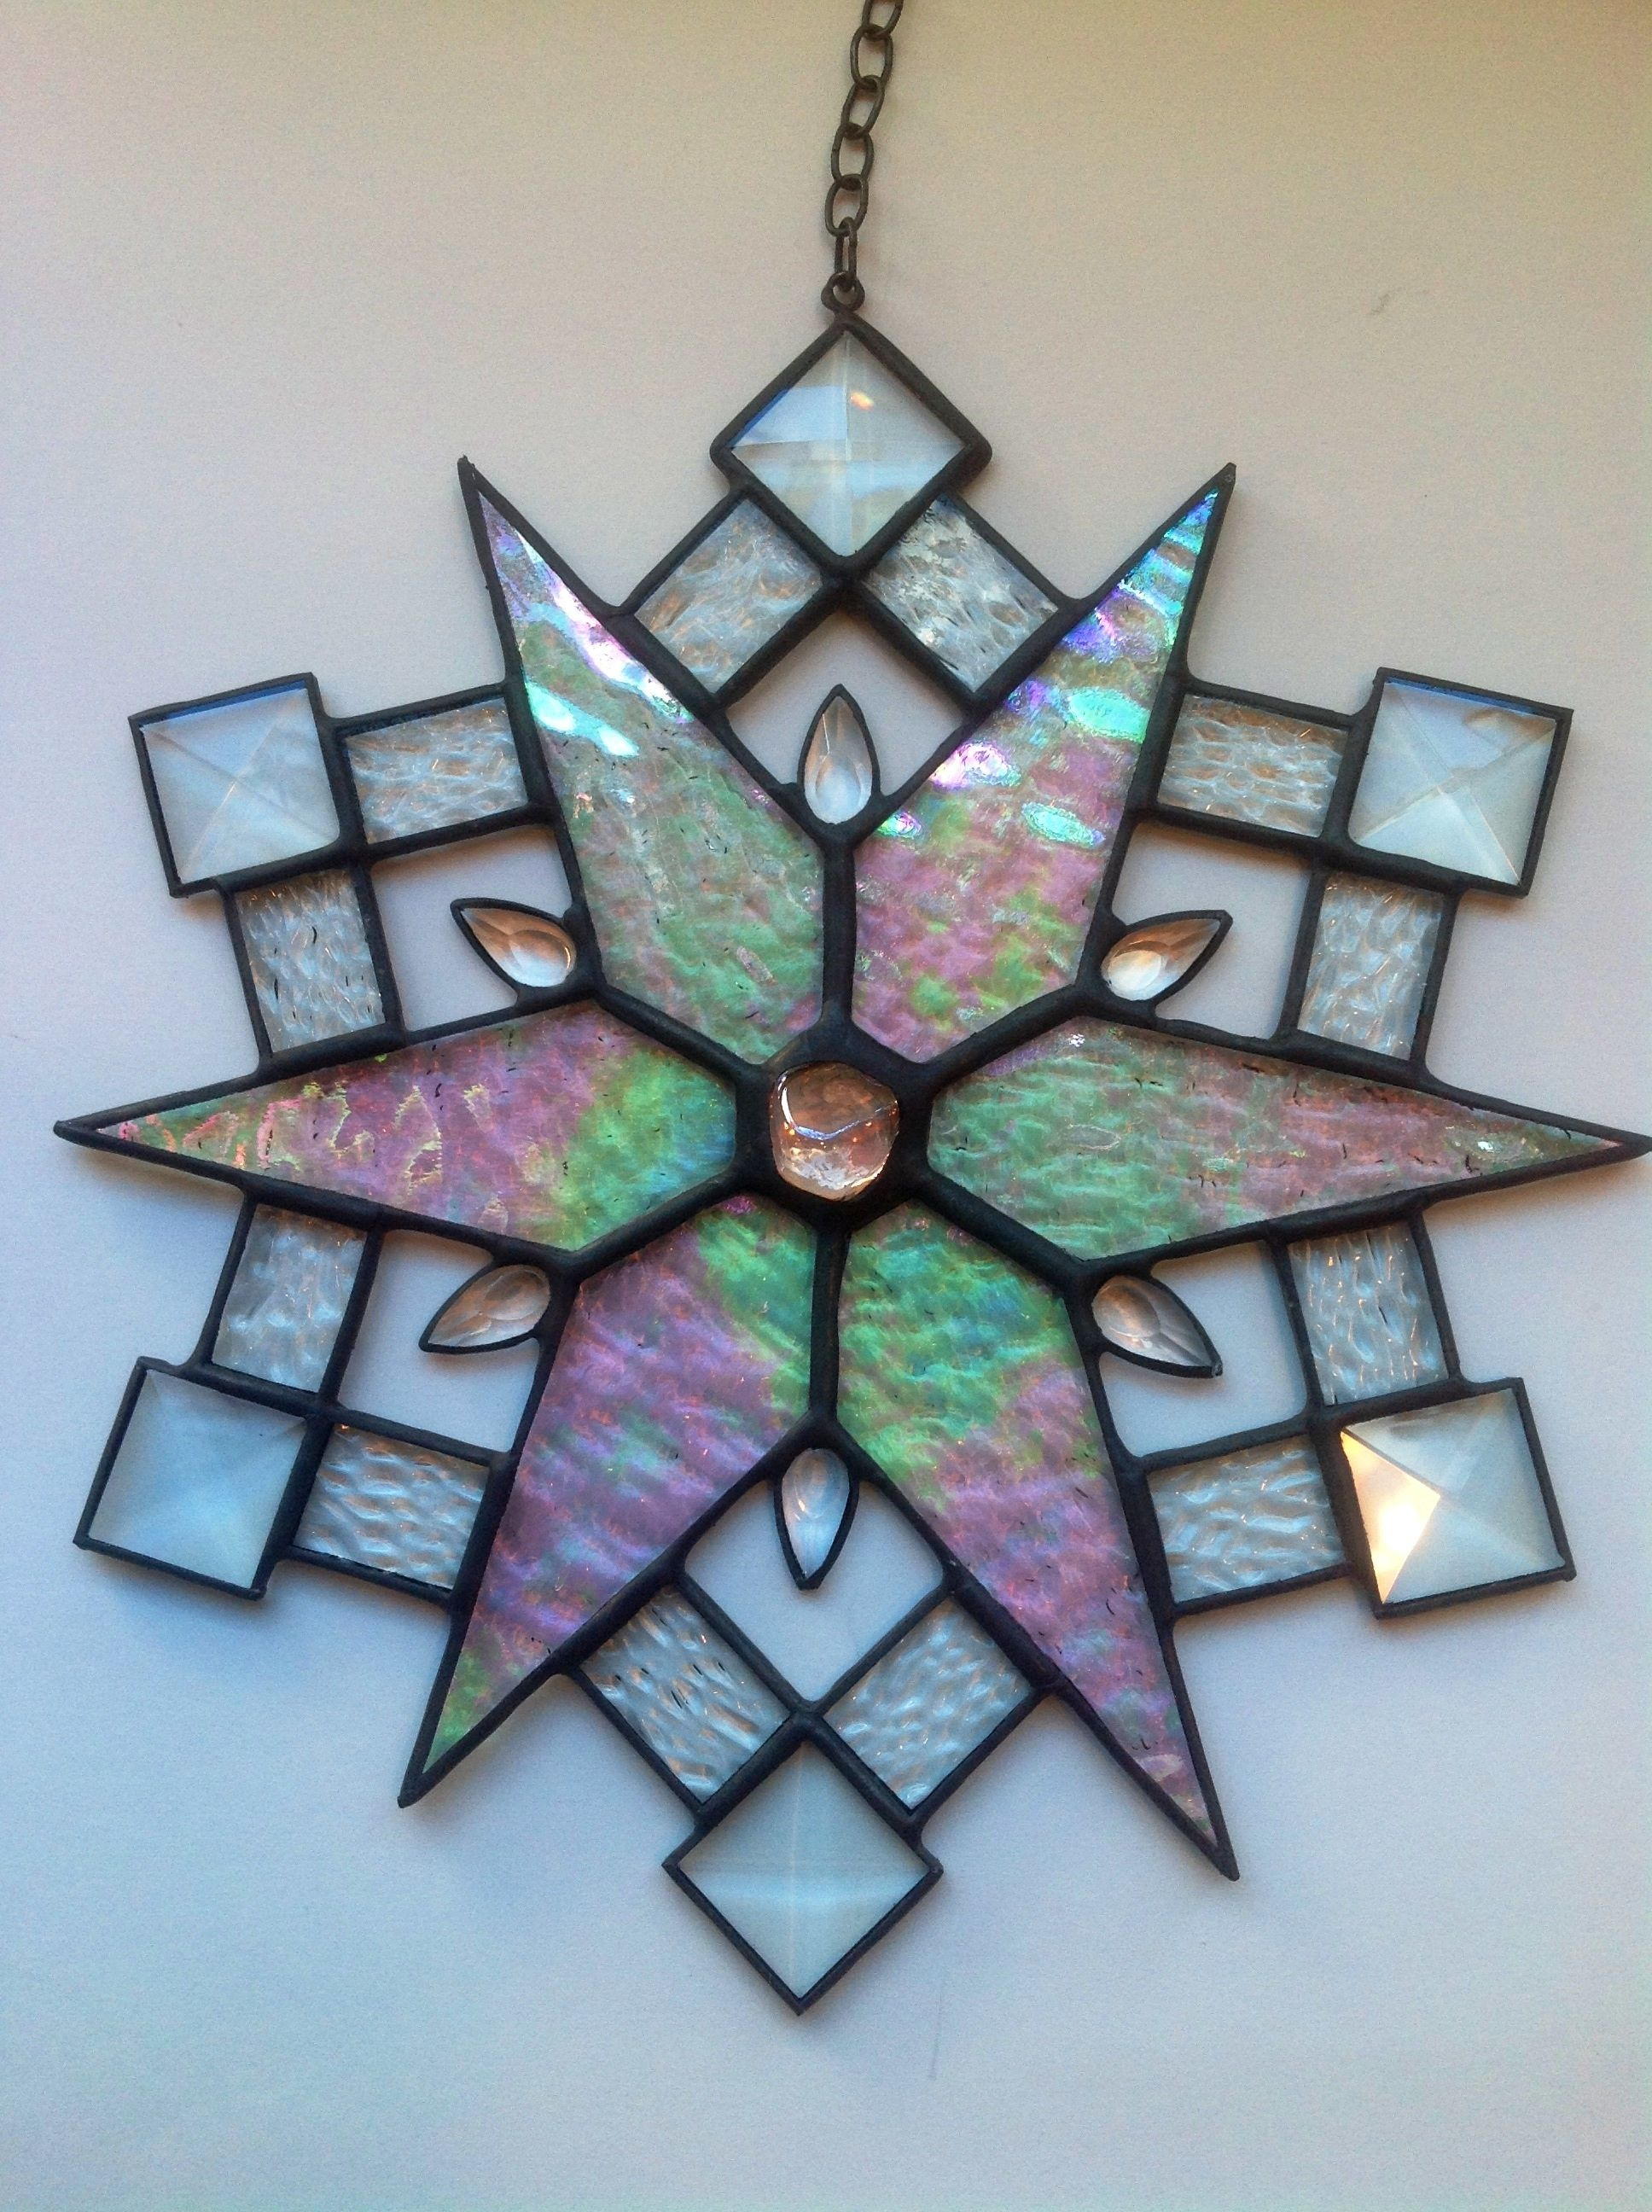 Red Snowflake Stained Glass Google Search Stained Glass Ornaments Stained Glass Quilt Stained Glass Christmas